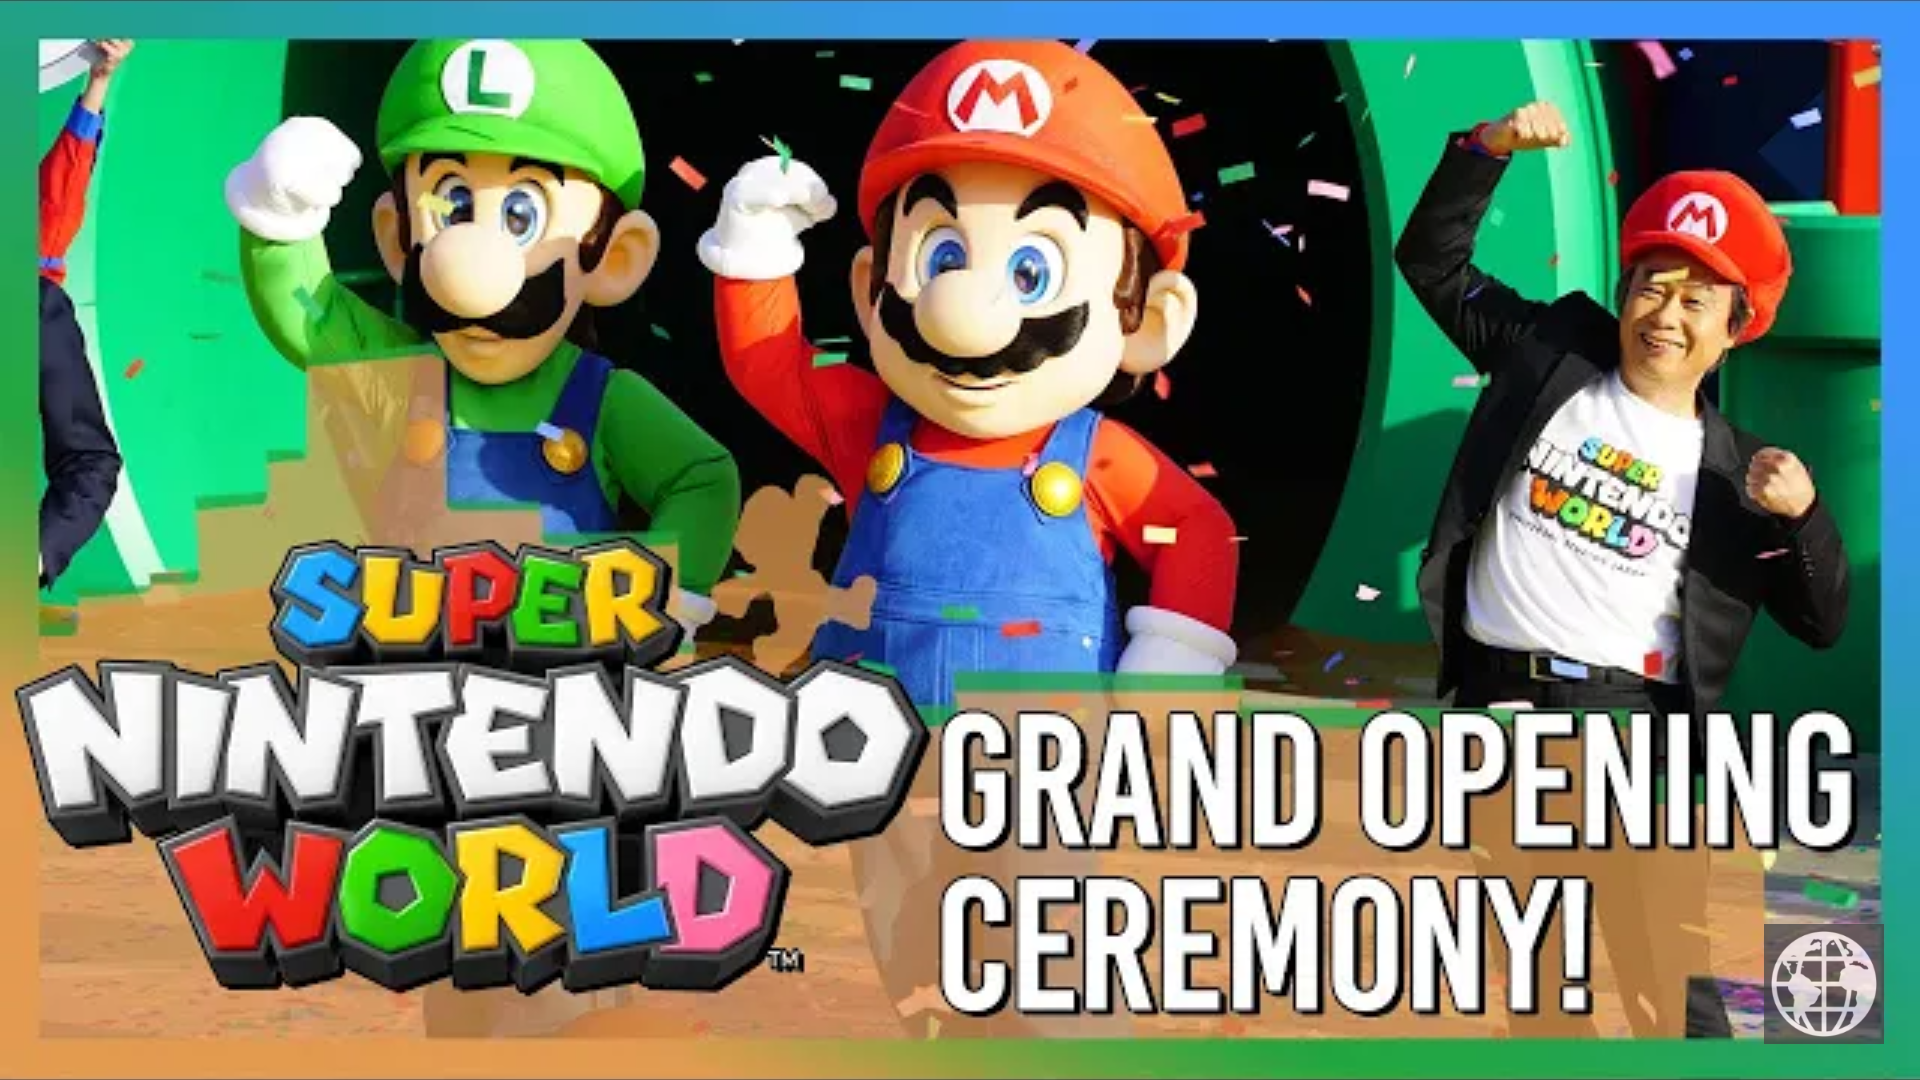 Super Nintendo World Grand Opening